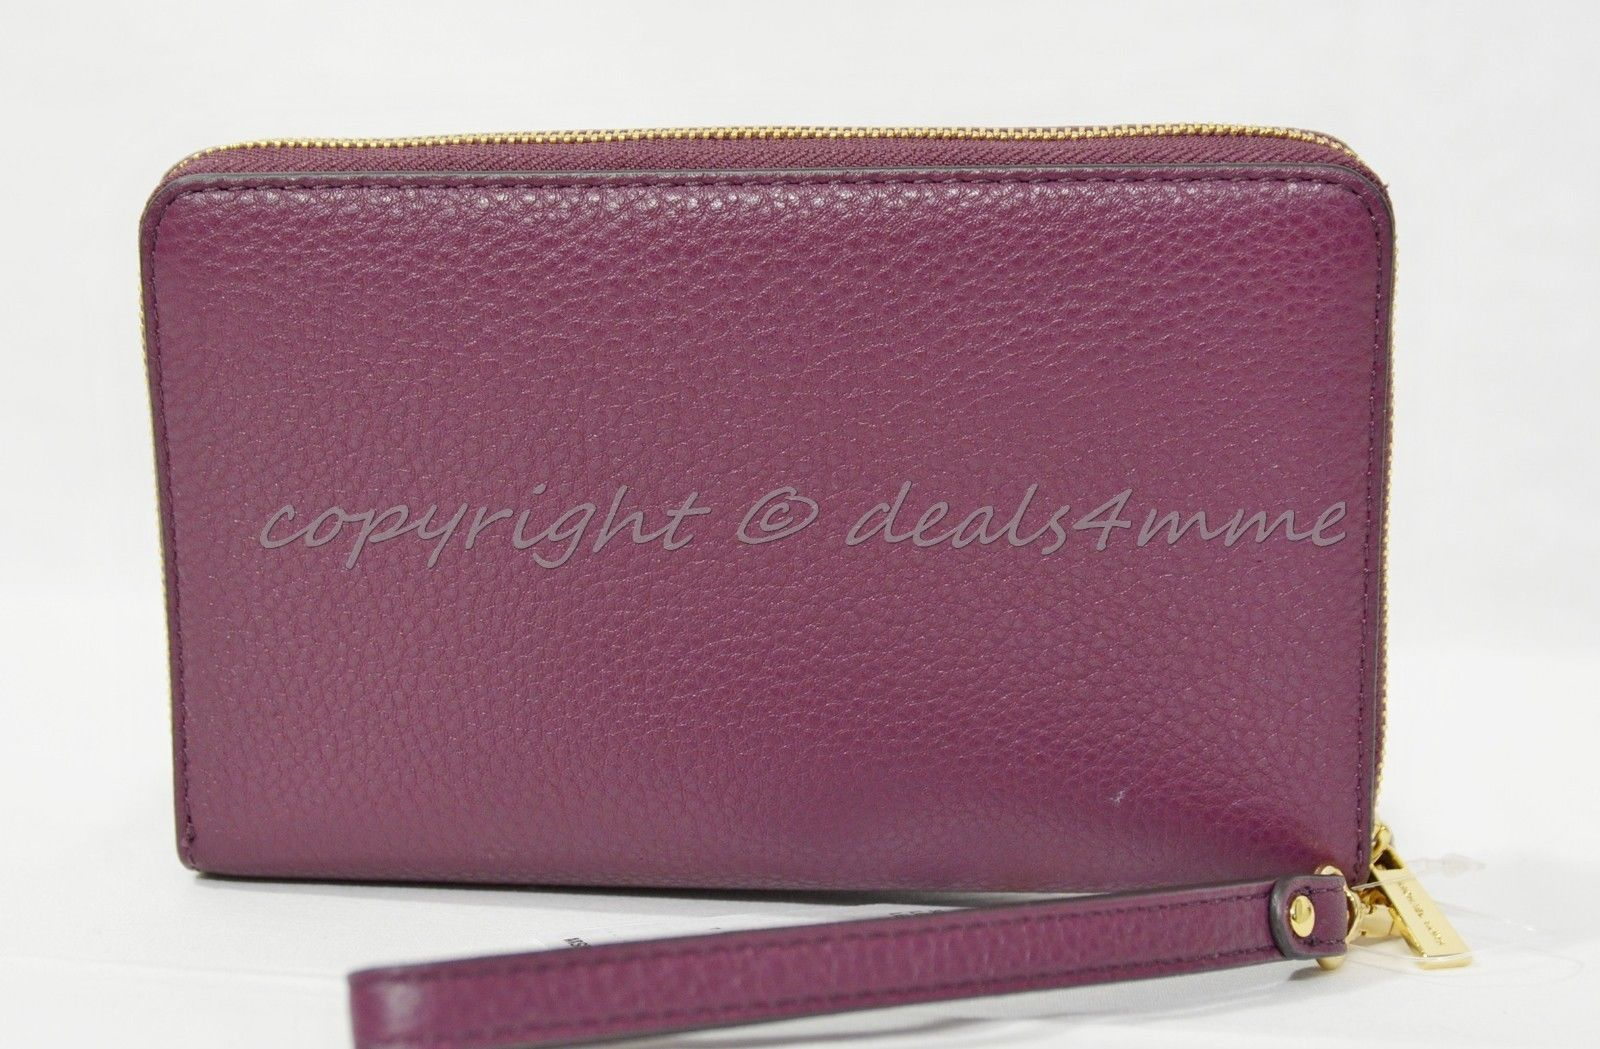 b66da85938a8 NWT Michael Kors Adele Large Leather Smartphone Wallet Wristlet in Plum